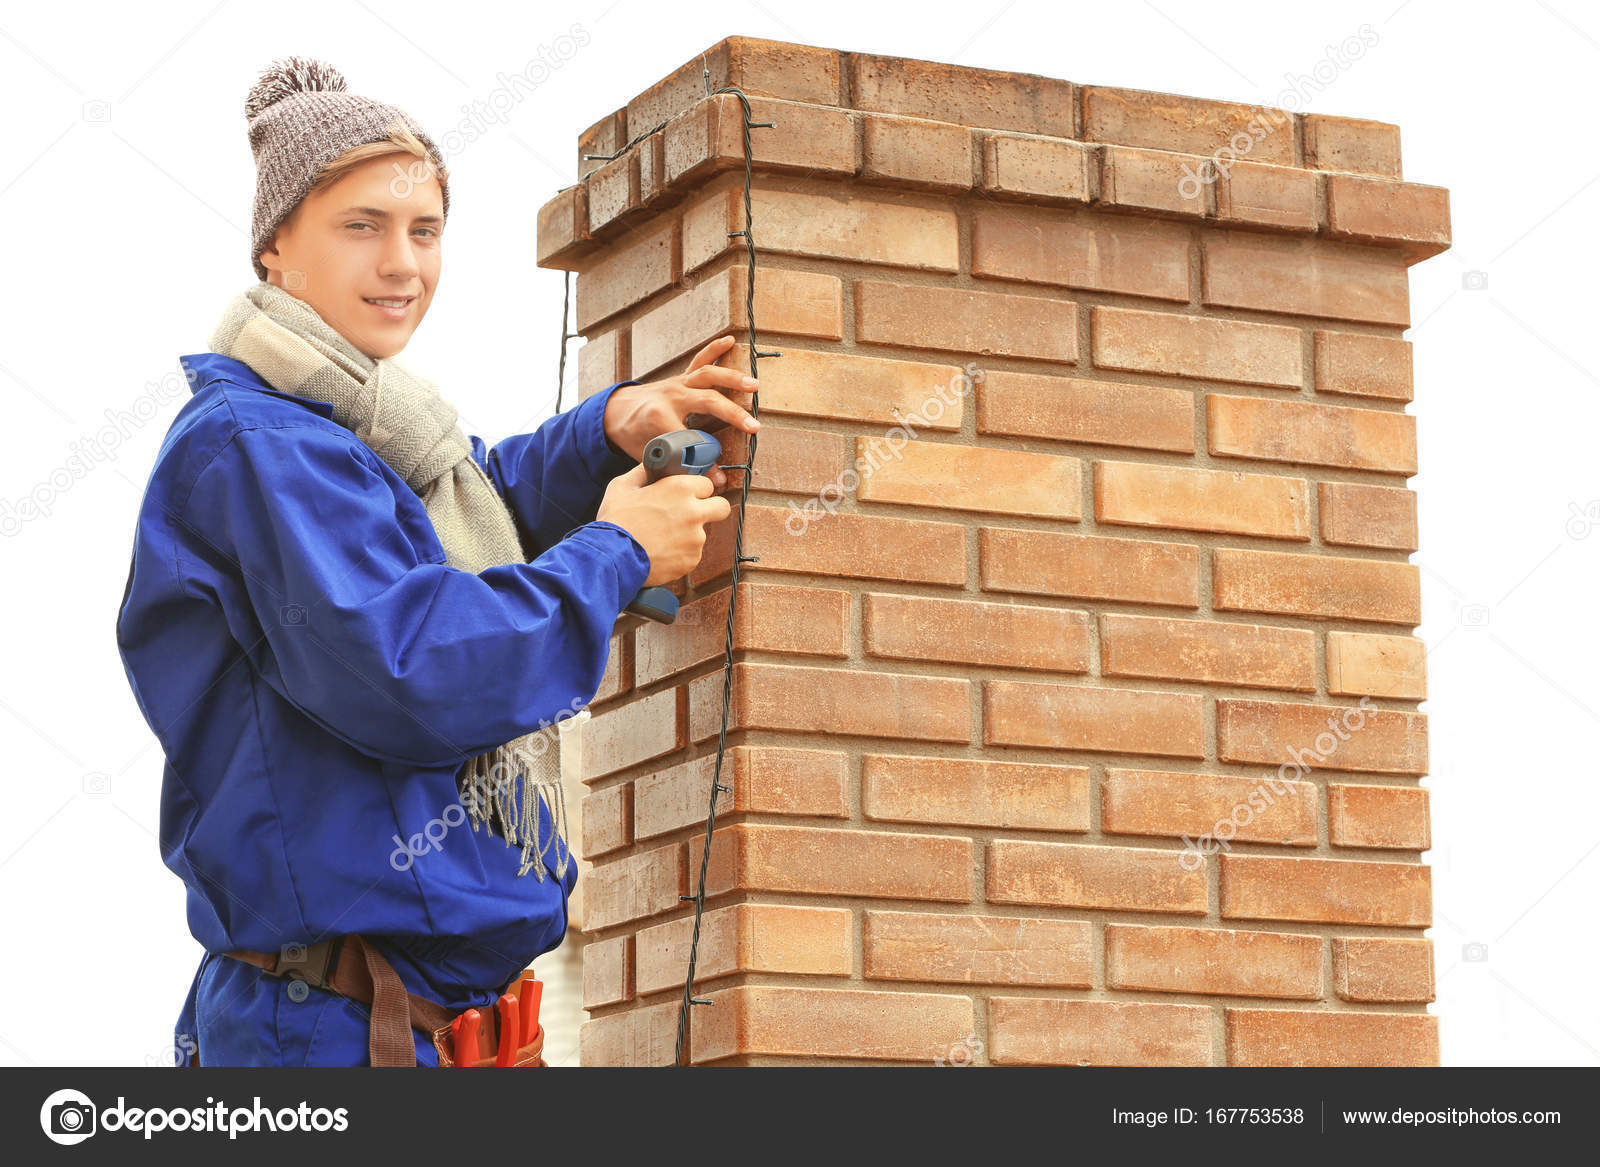 What Can I Use To Attach Christmas Lights To Brick young man hanging christmas lights on chimney of house